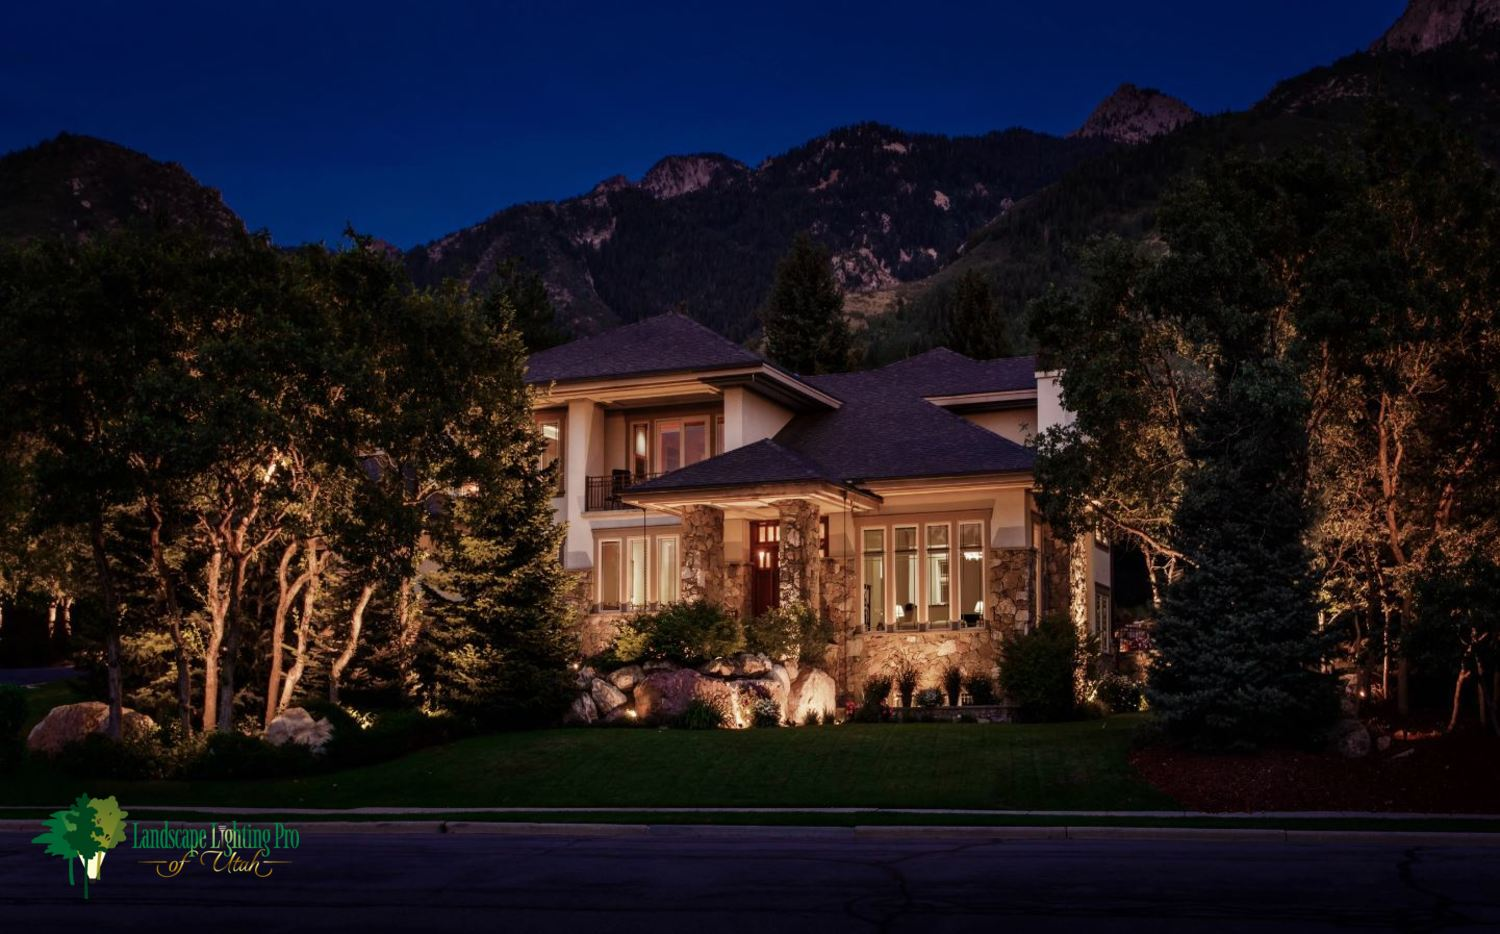 Residential-Security-Lighting-Salt-Lake-City-Utah-.jpg